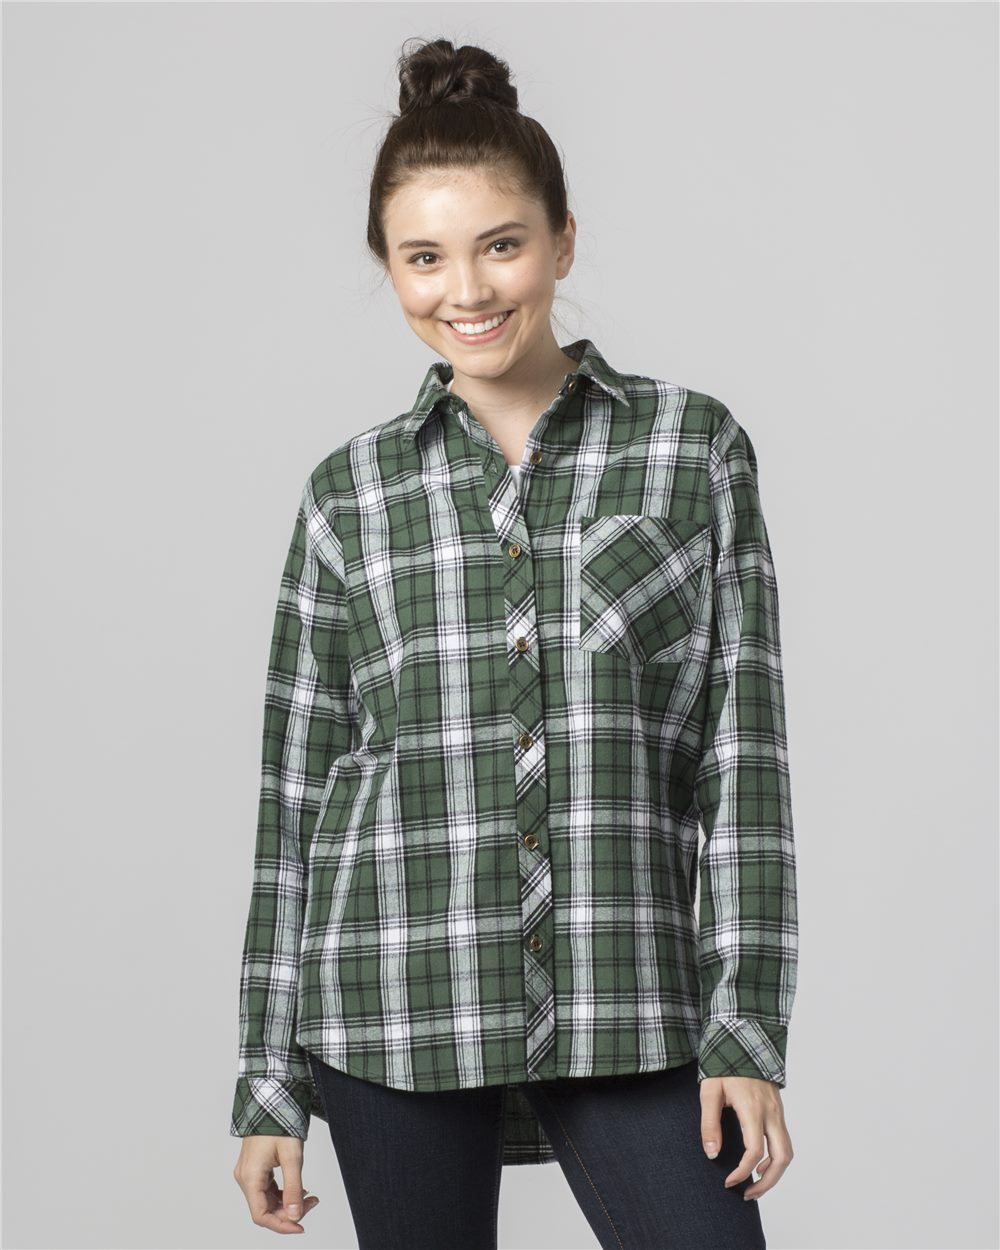 Boxercraft F50 - Women's Flannel Shirt